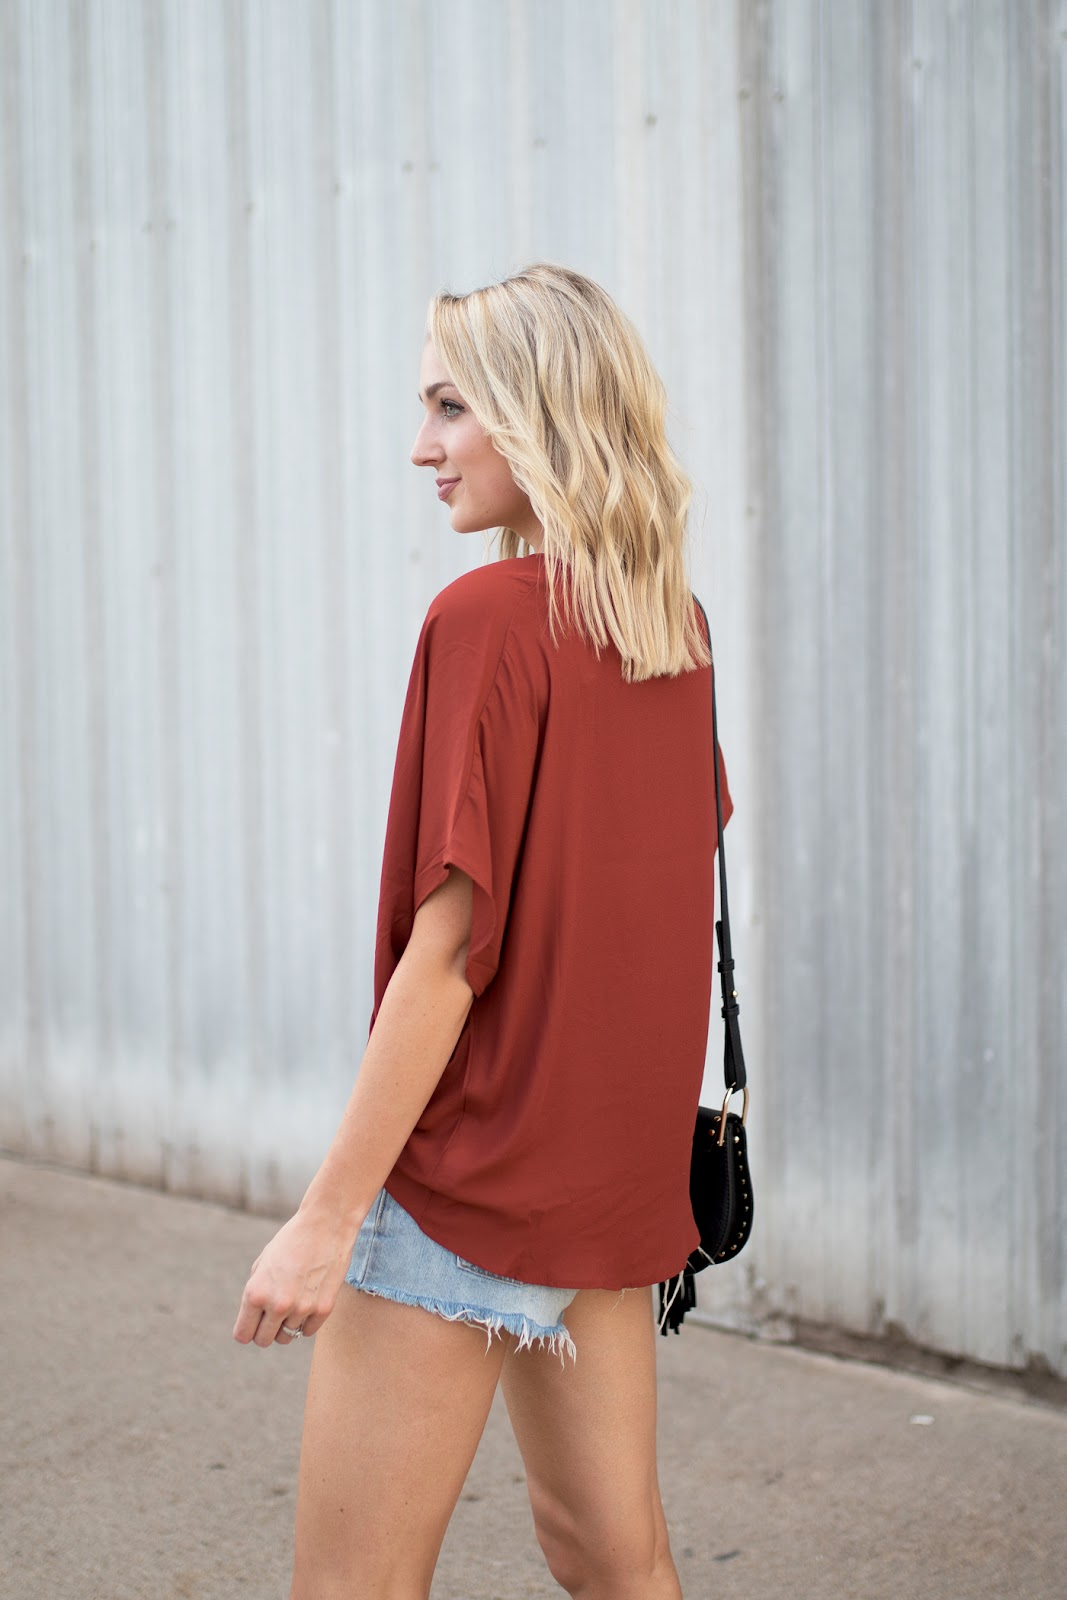 Rust red top